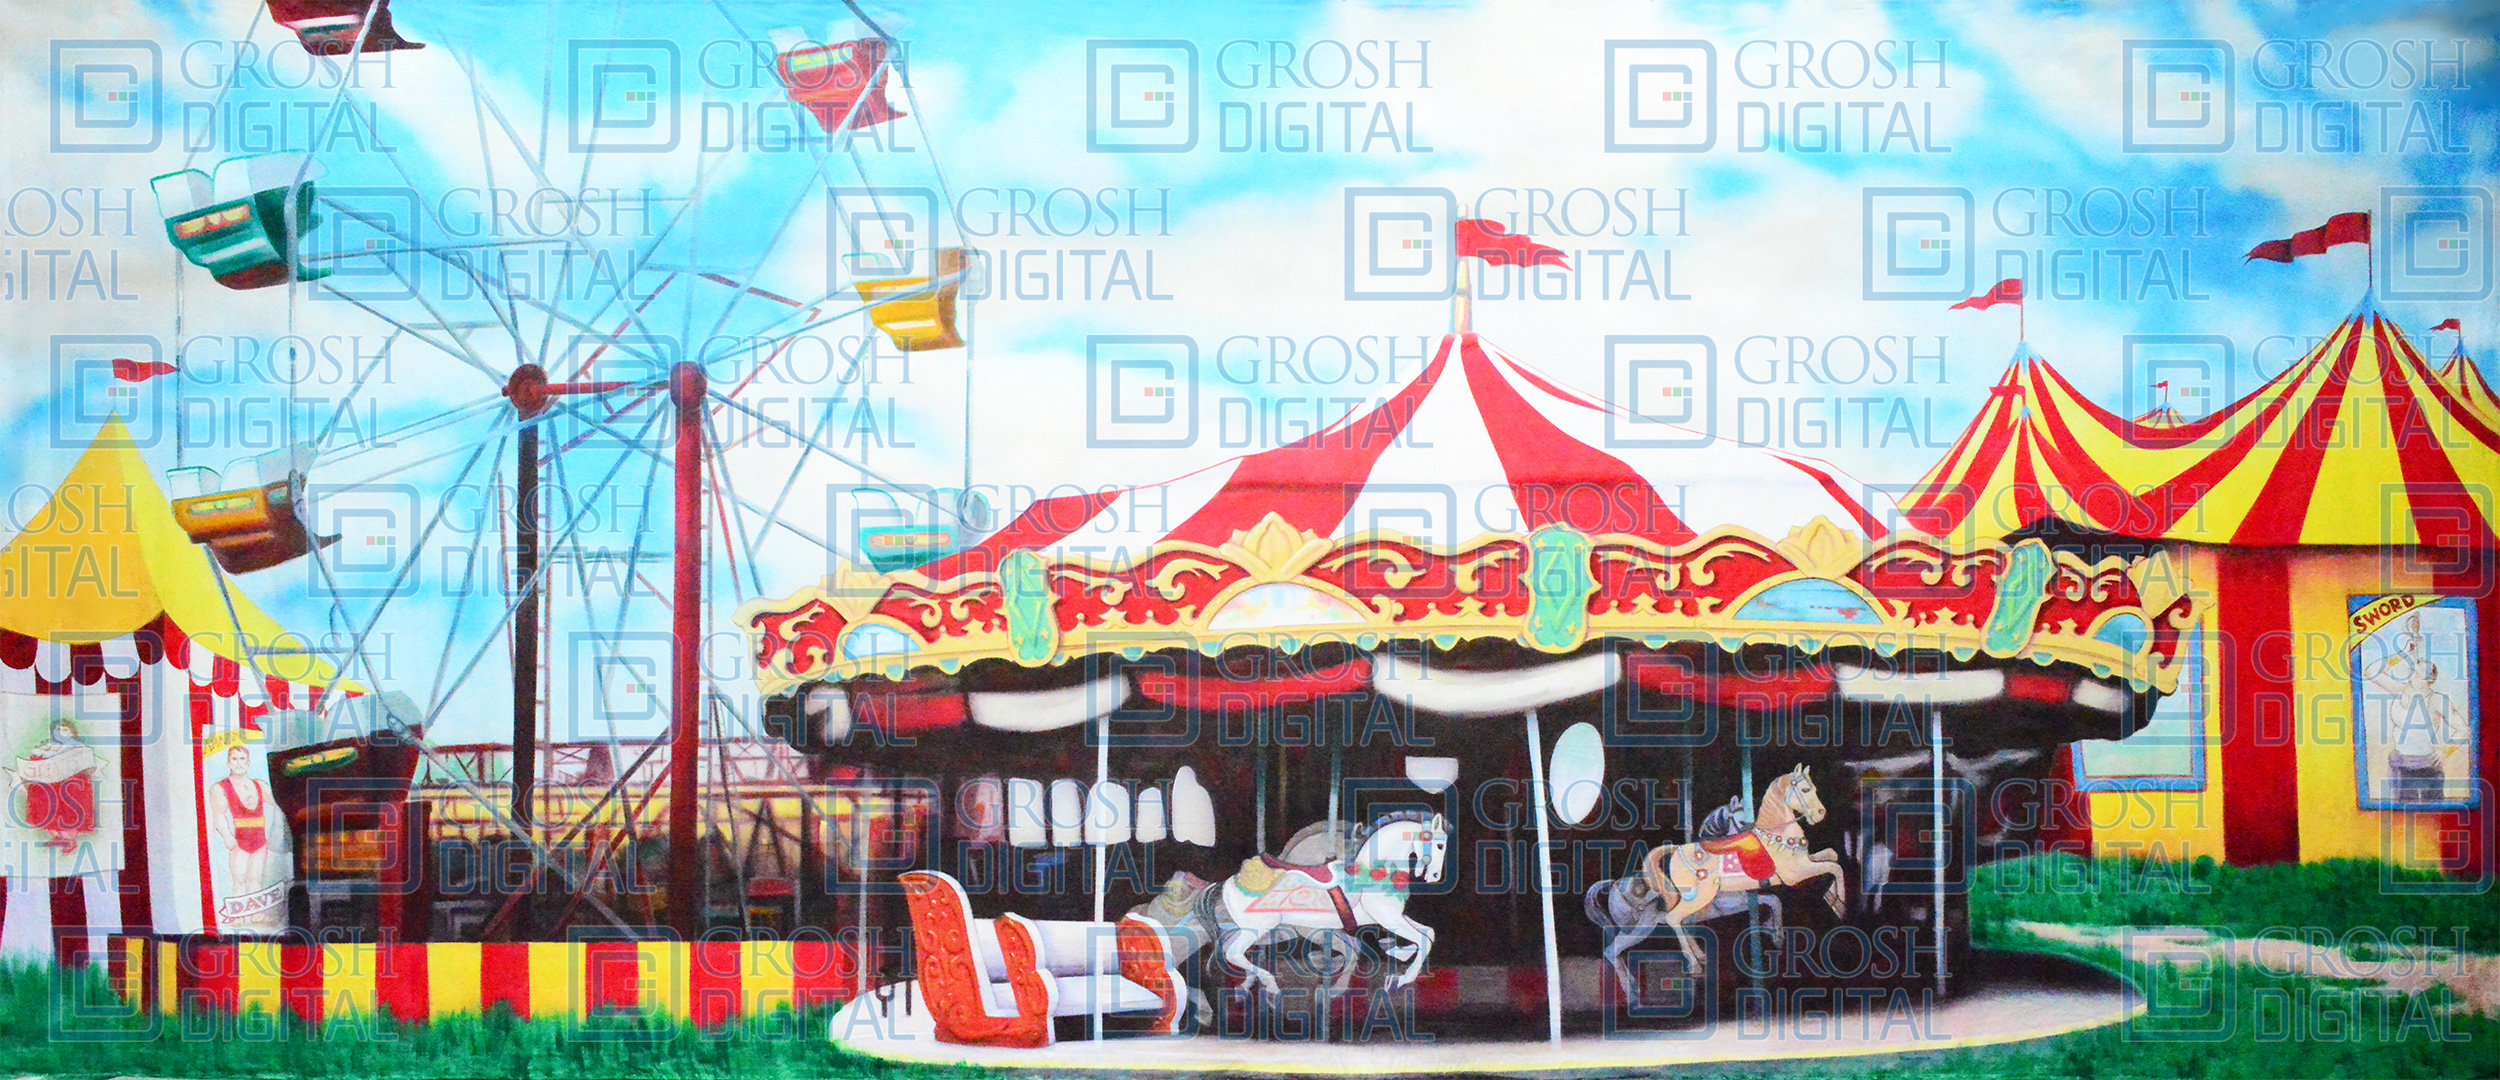 Carnival 1 Projected Backdrop for Annie Get Your Gun, Exteriors, Grease